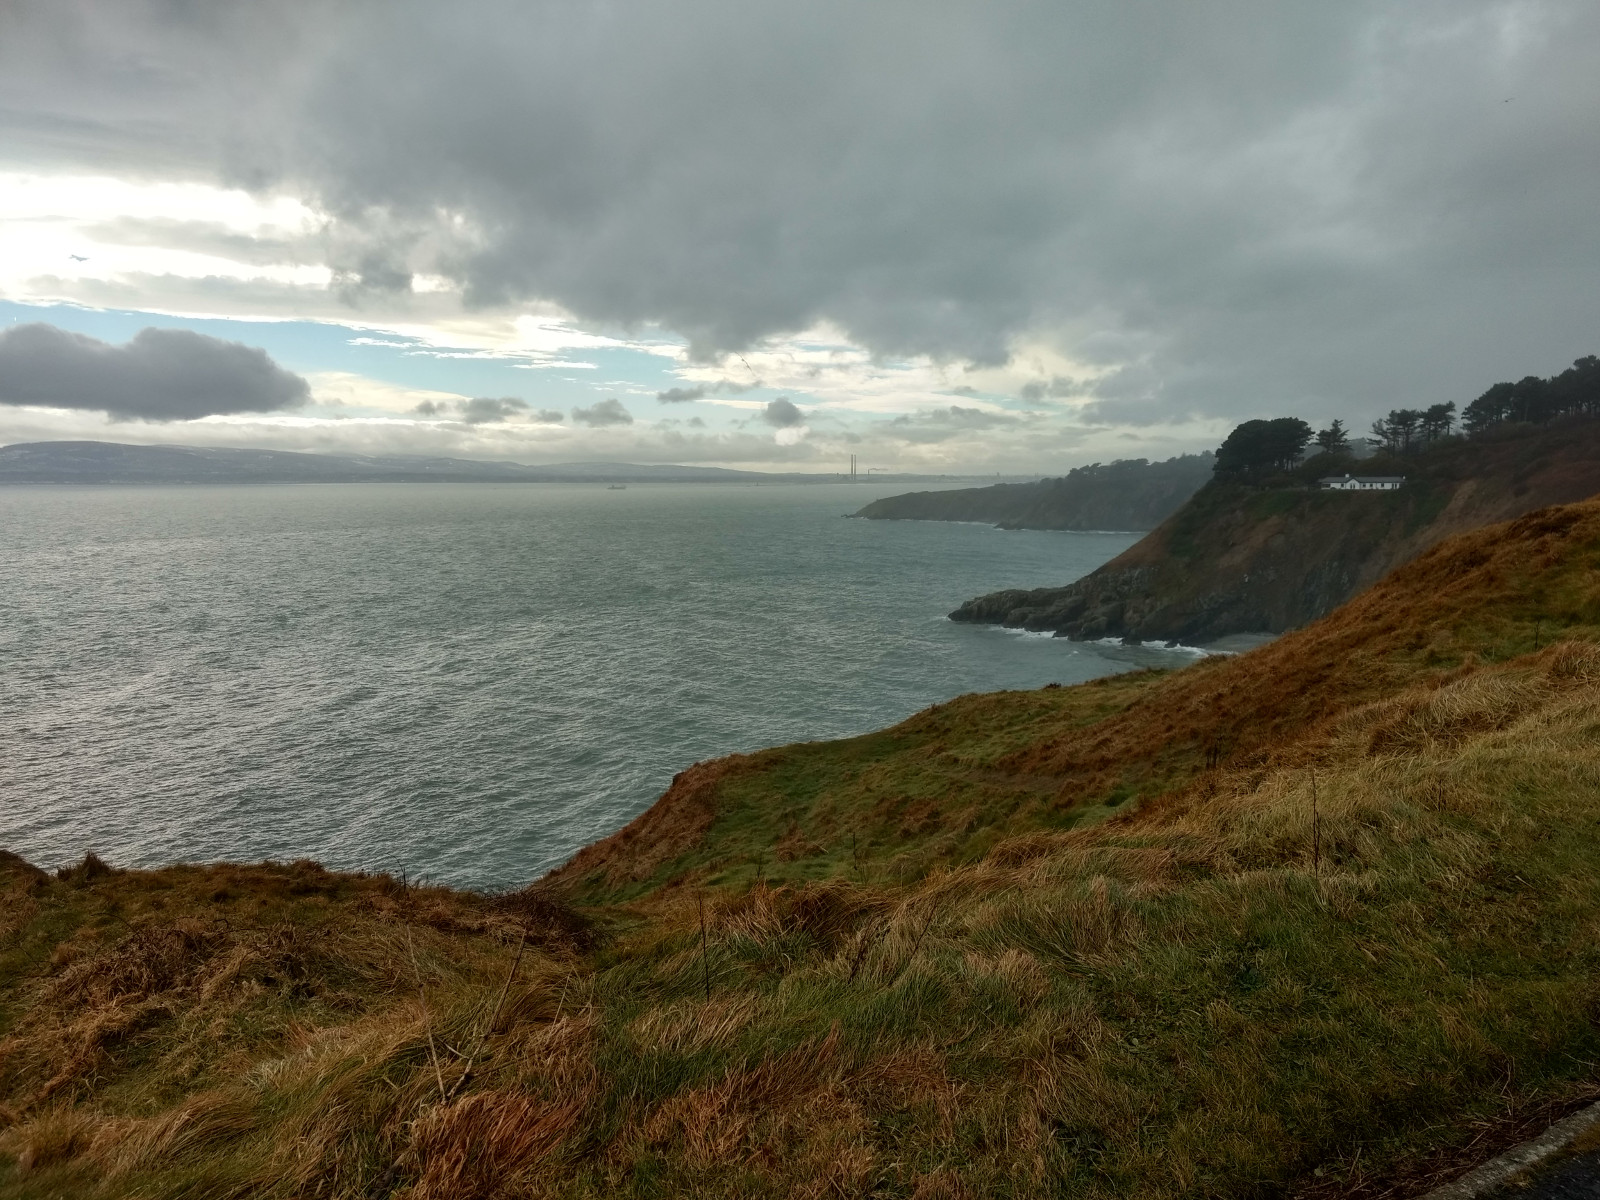 Yet another picture of the cliffs of Howth